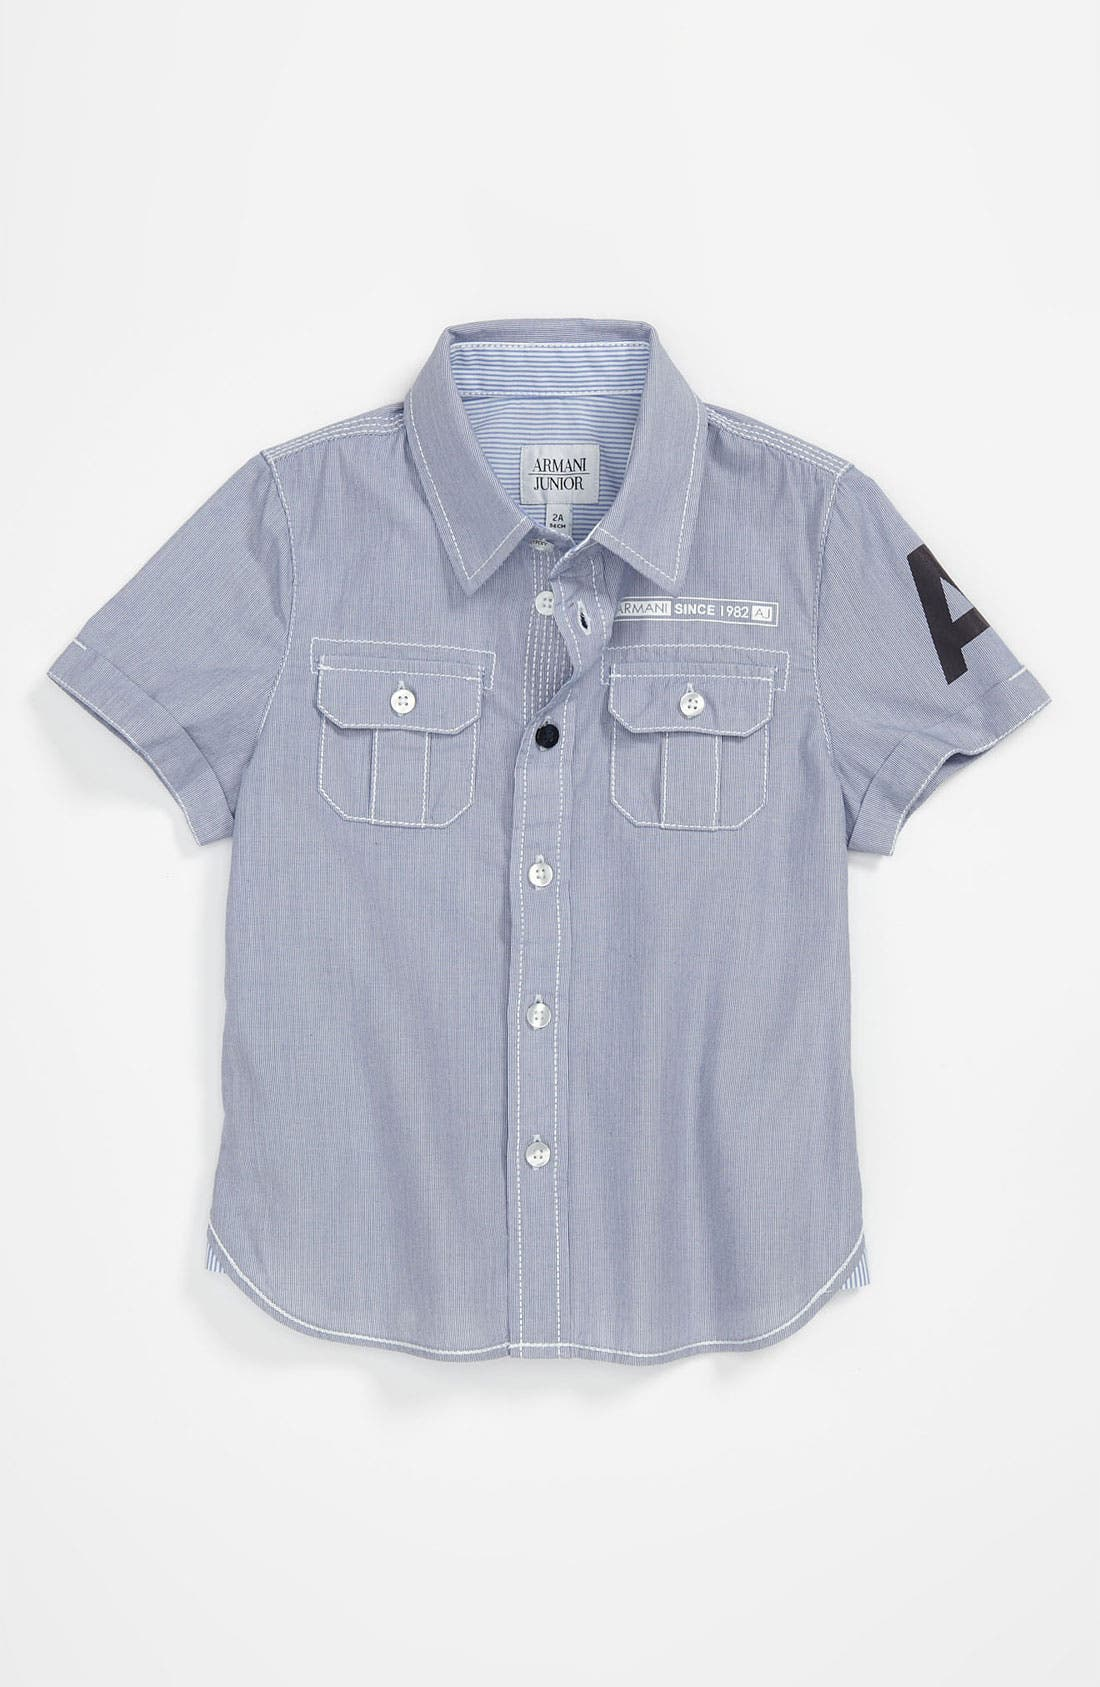 Alternate Image 1 Selected - Armani Junior Woven Shirt (Little Boys)